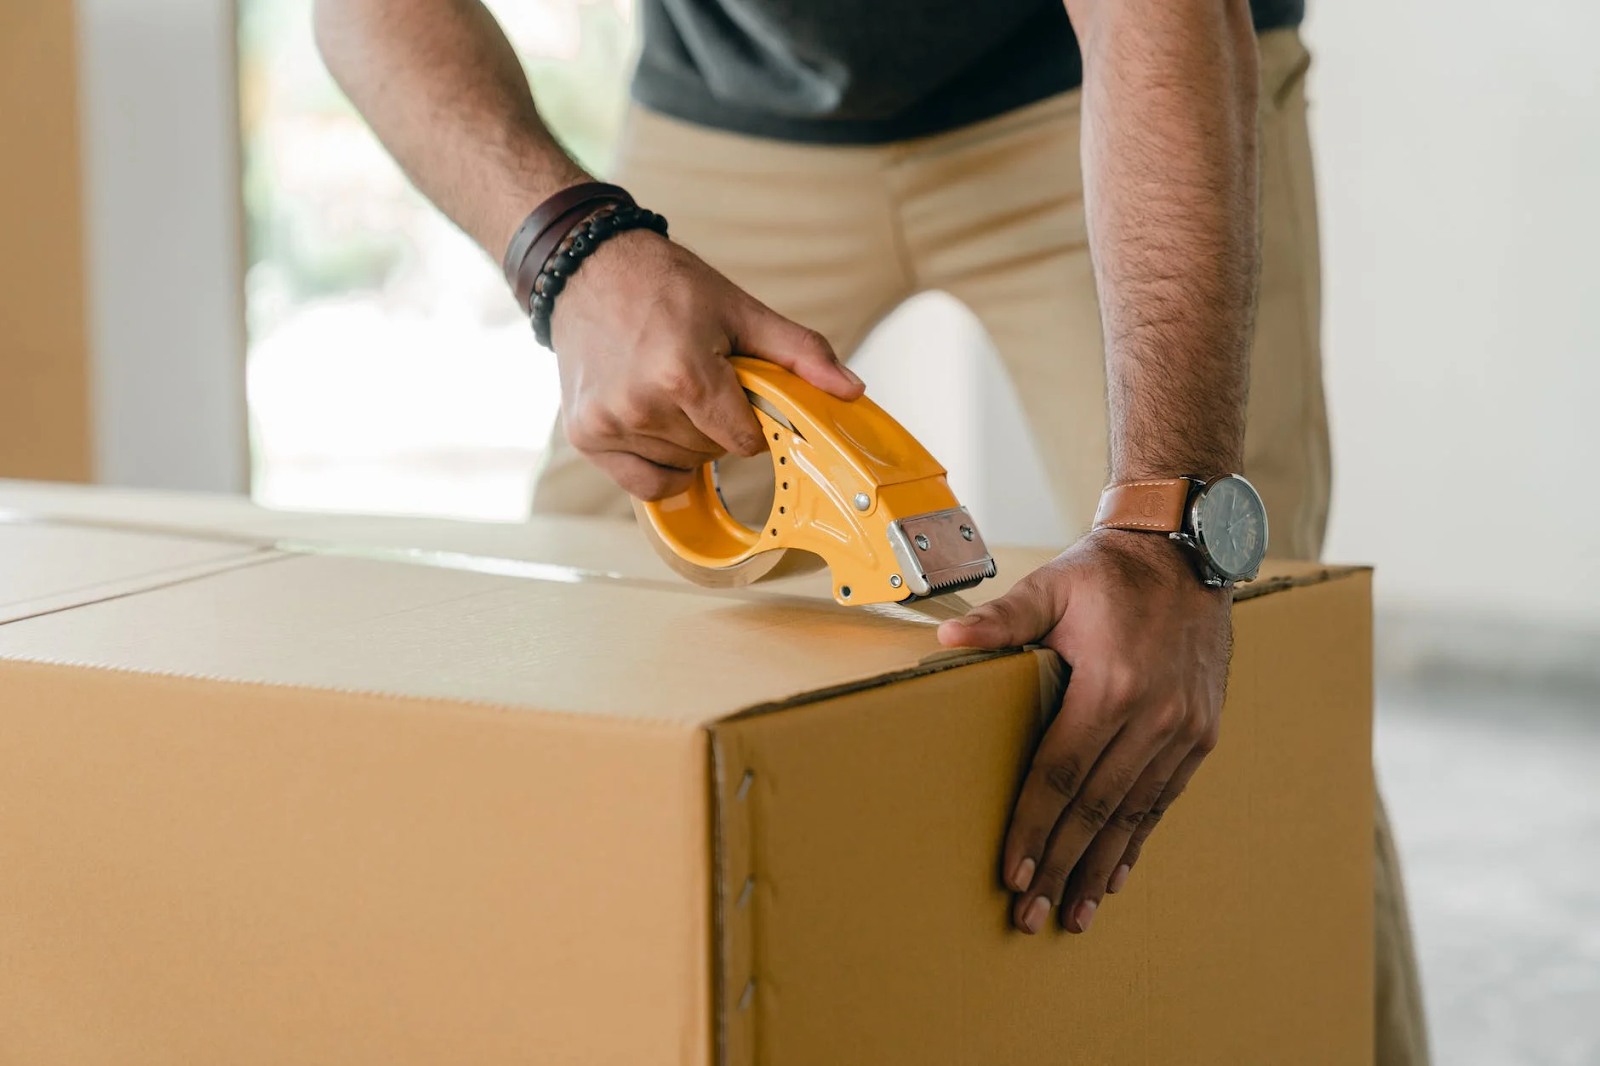 Man packing up a box for courier